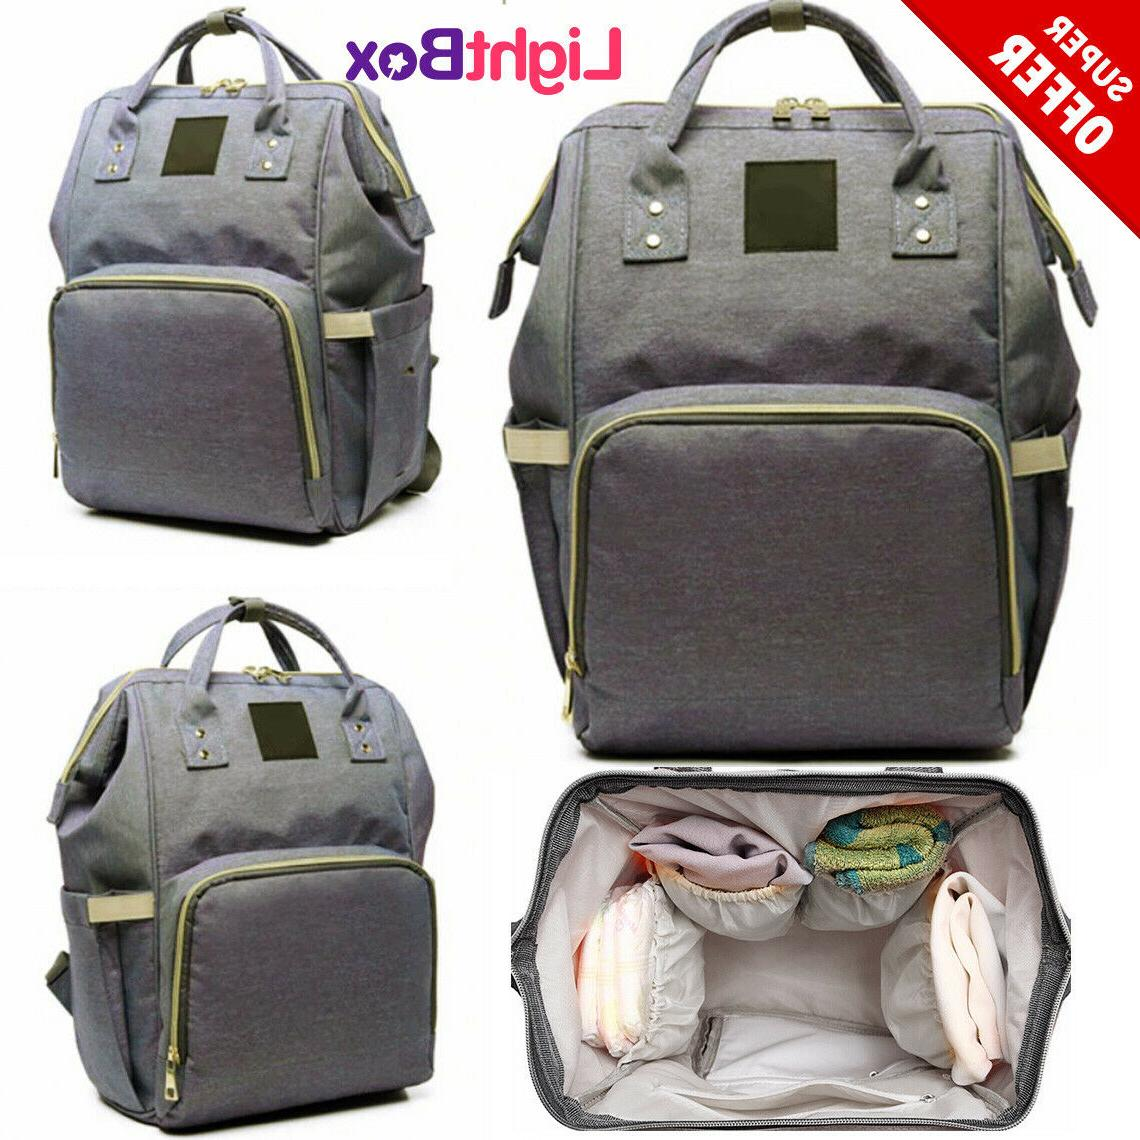 mom diaper bag for baby backpack nappy